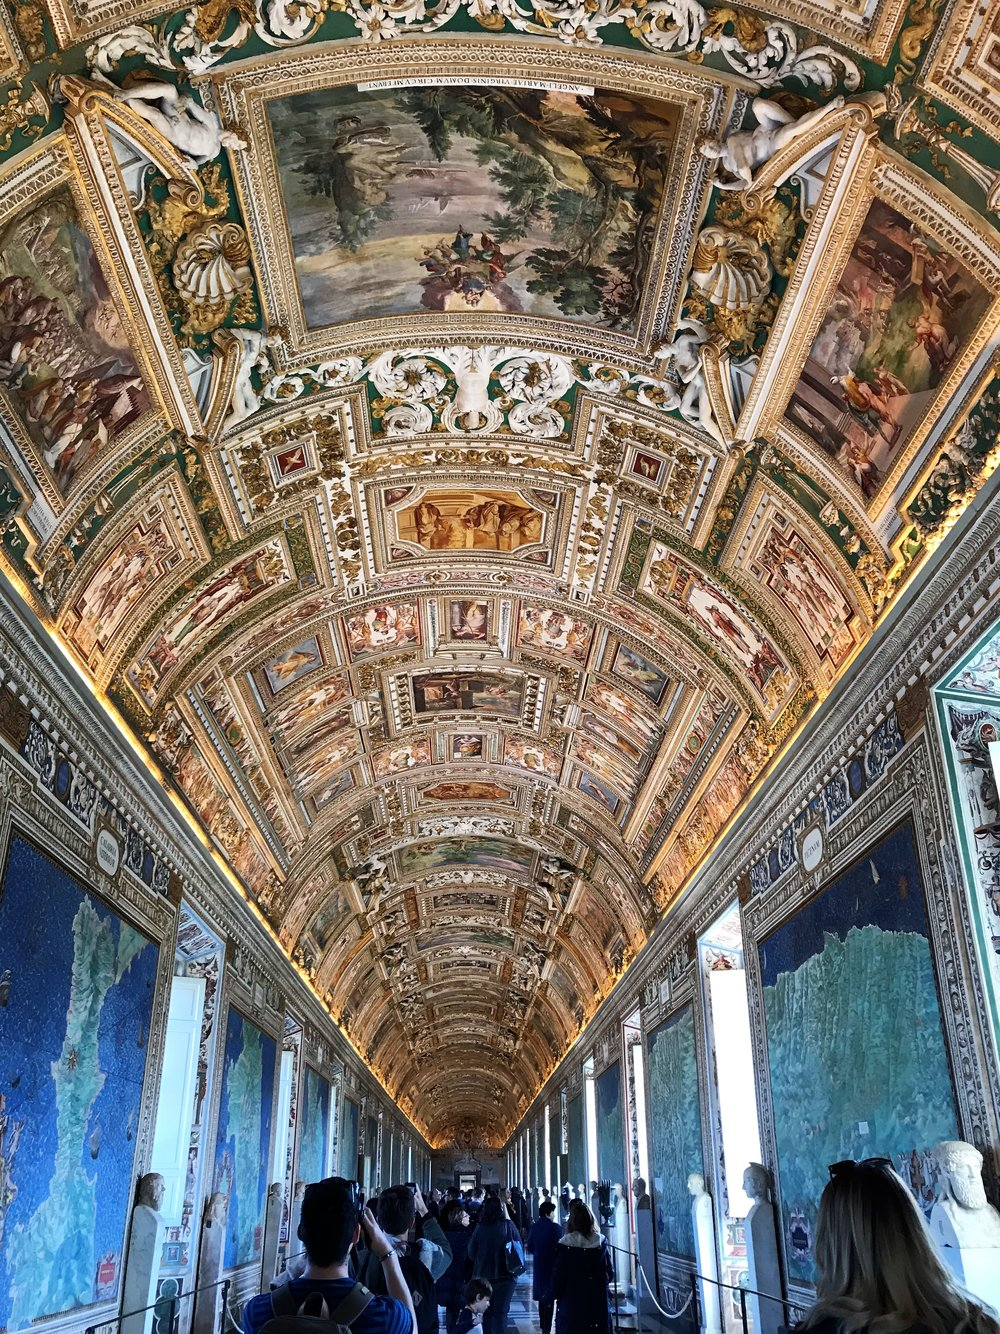 Hall in the Vatican Museum with maps of regions of Italy